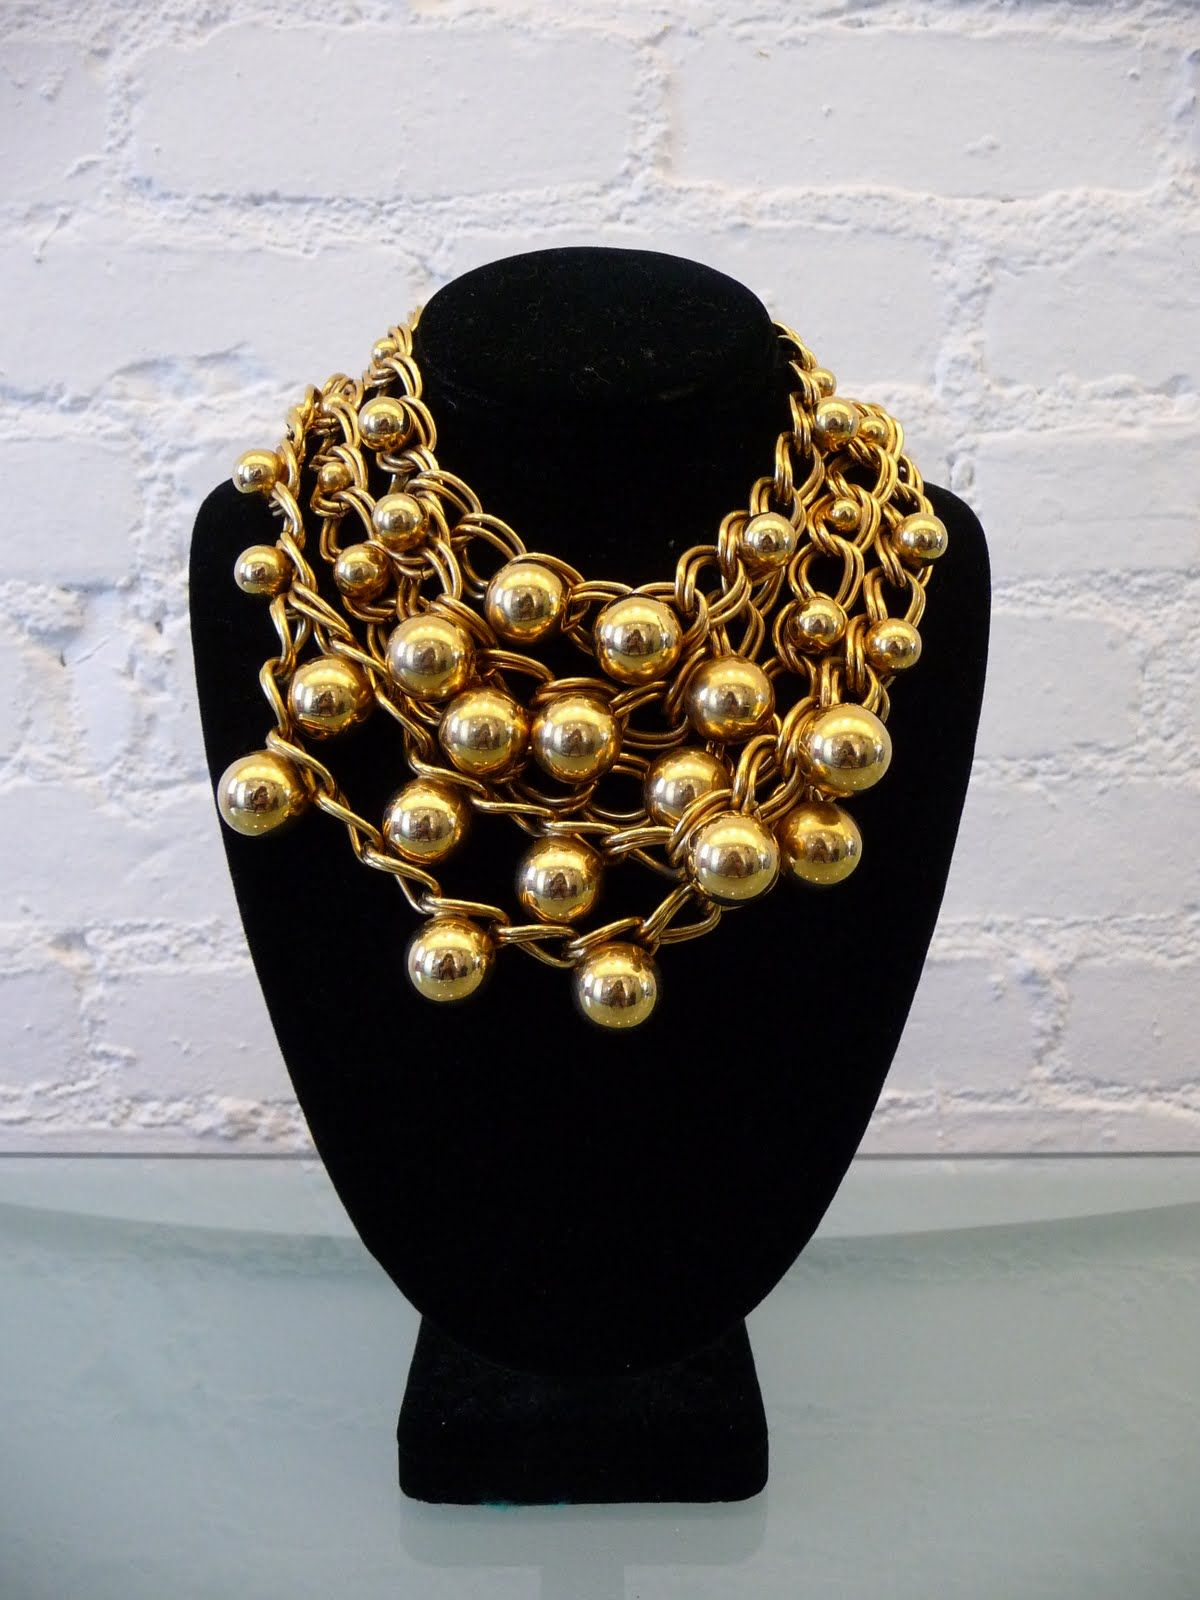 83cdbbe65f vintage yves saint laurent ball and chain bib necklace | Costume ...